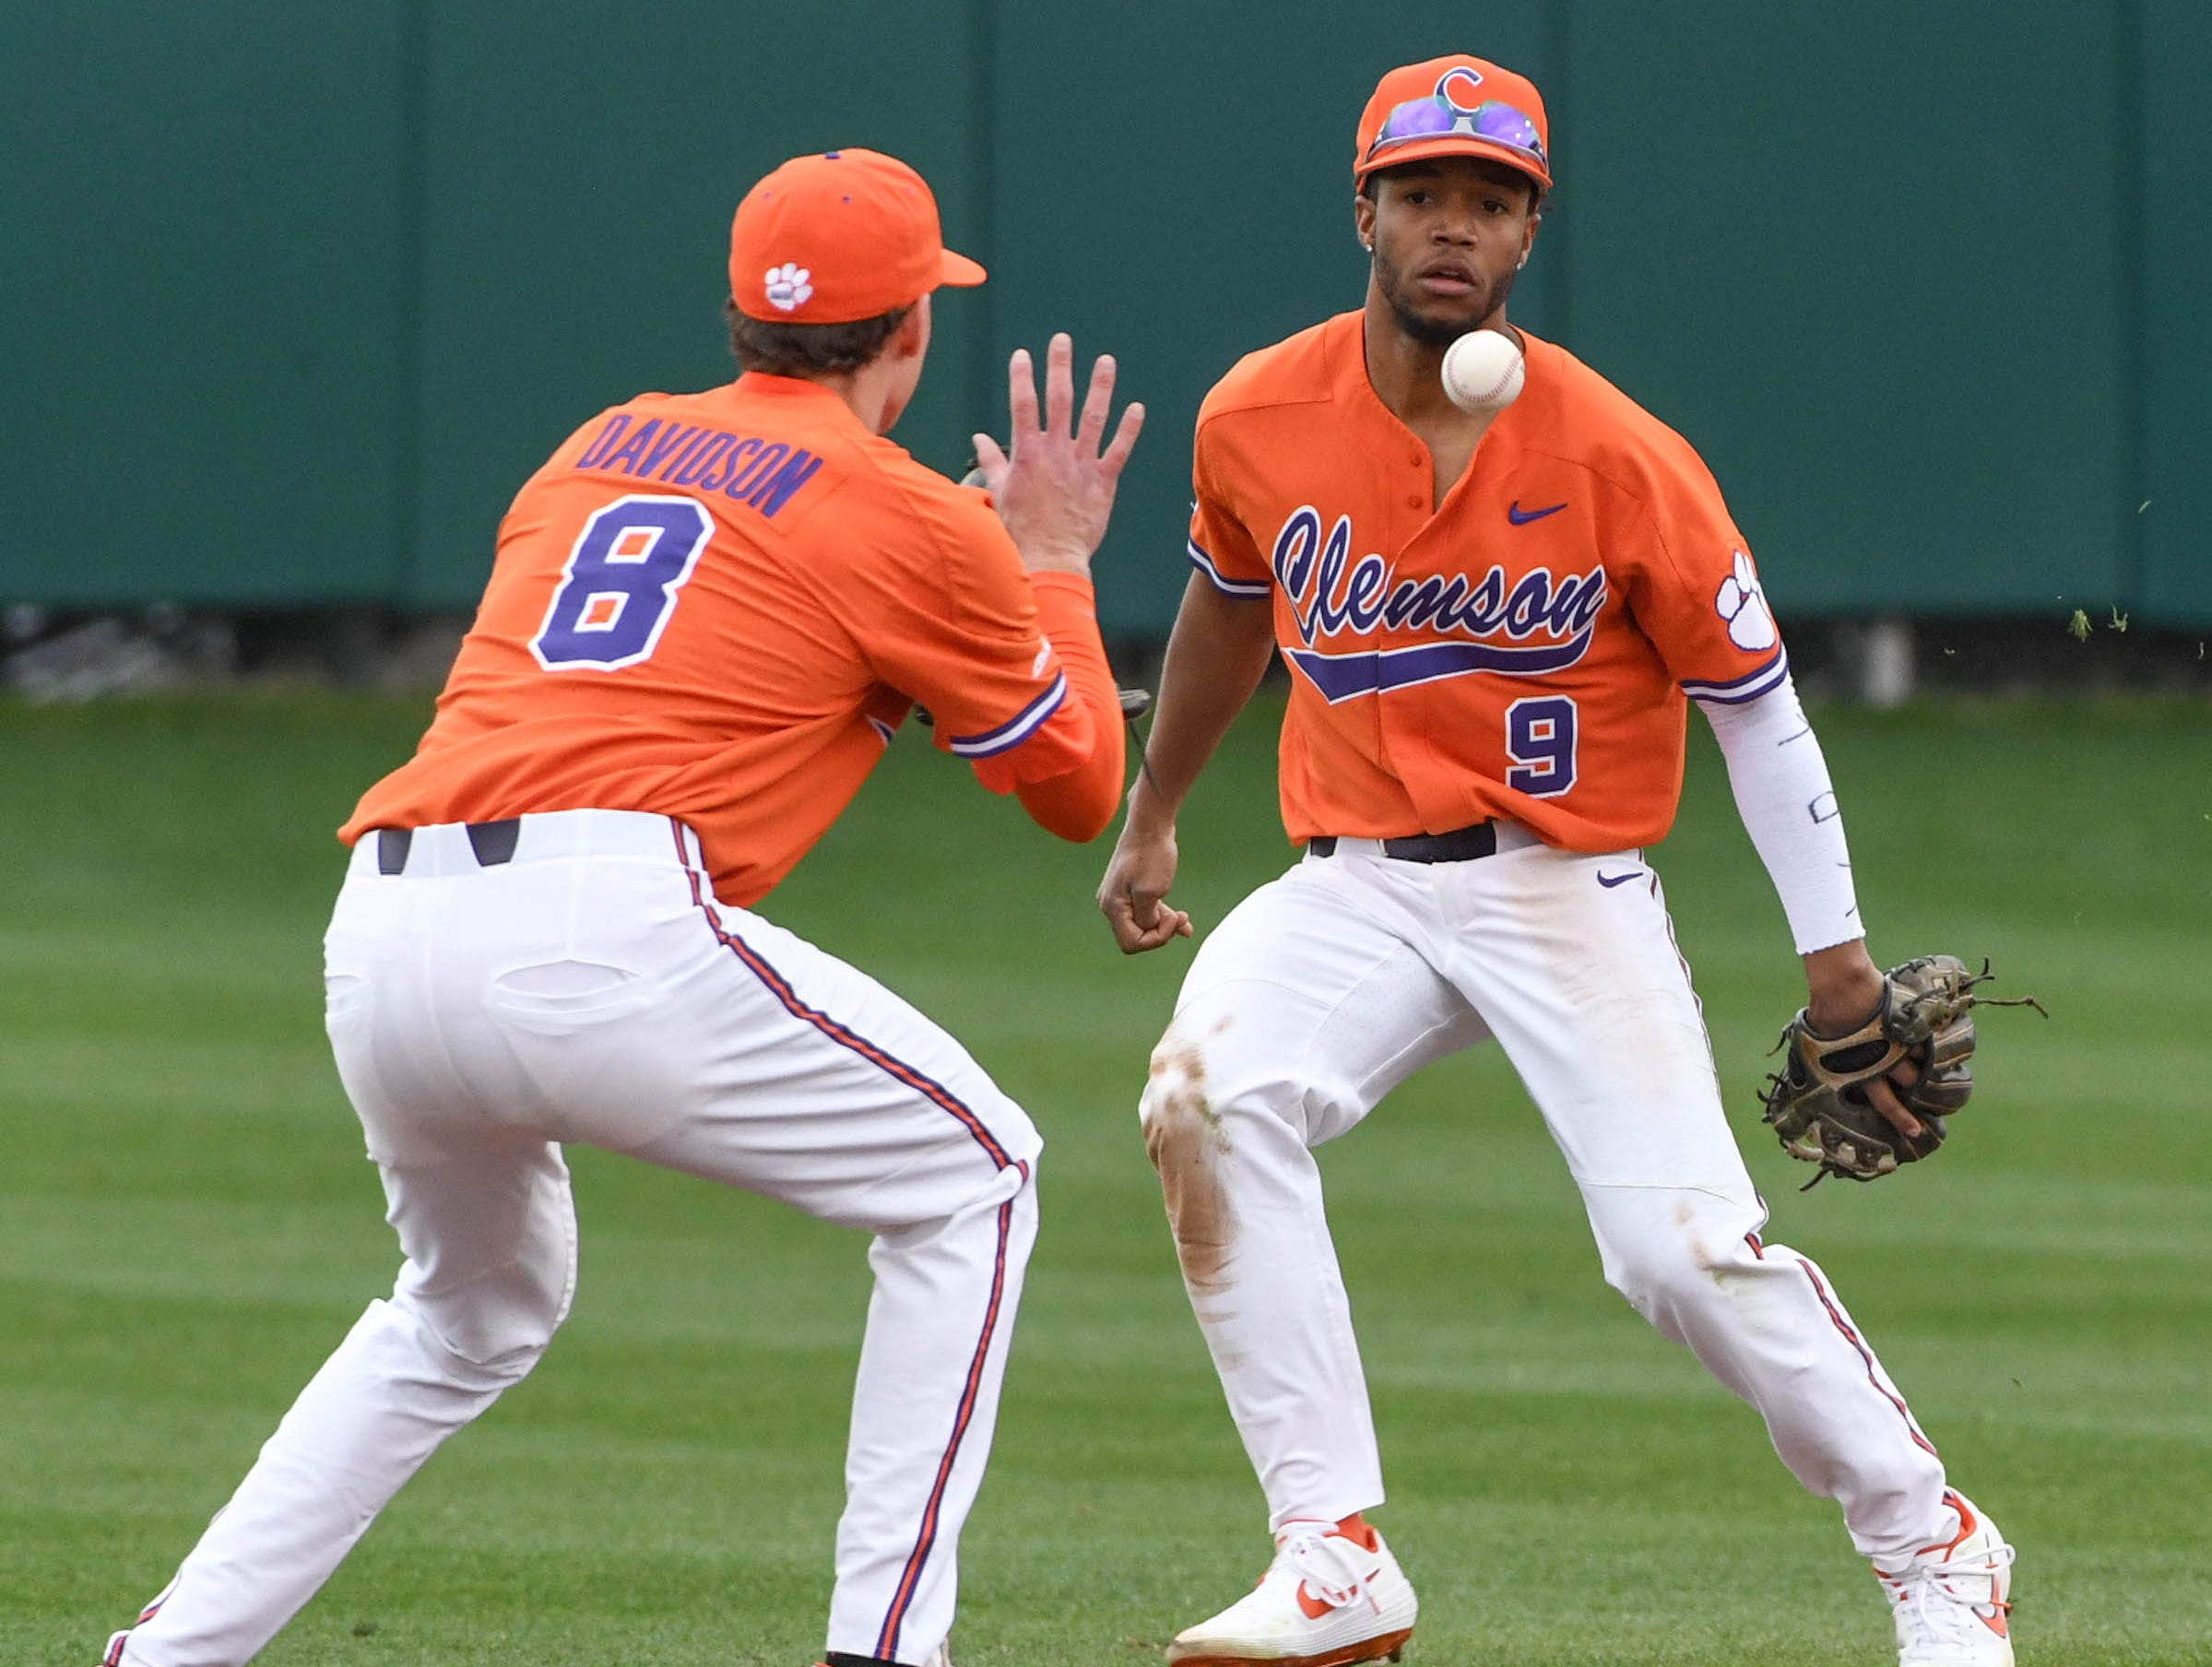 Clemson infielder Jordan Greene(9) flips a ball to teammate junior Logan Davidson(8) to make a play at first against South Alabama during the top of the fourth inning at Doug Kingsmore Stadium in Clemson Friday, February 15, 2019.